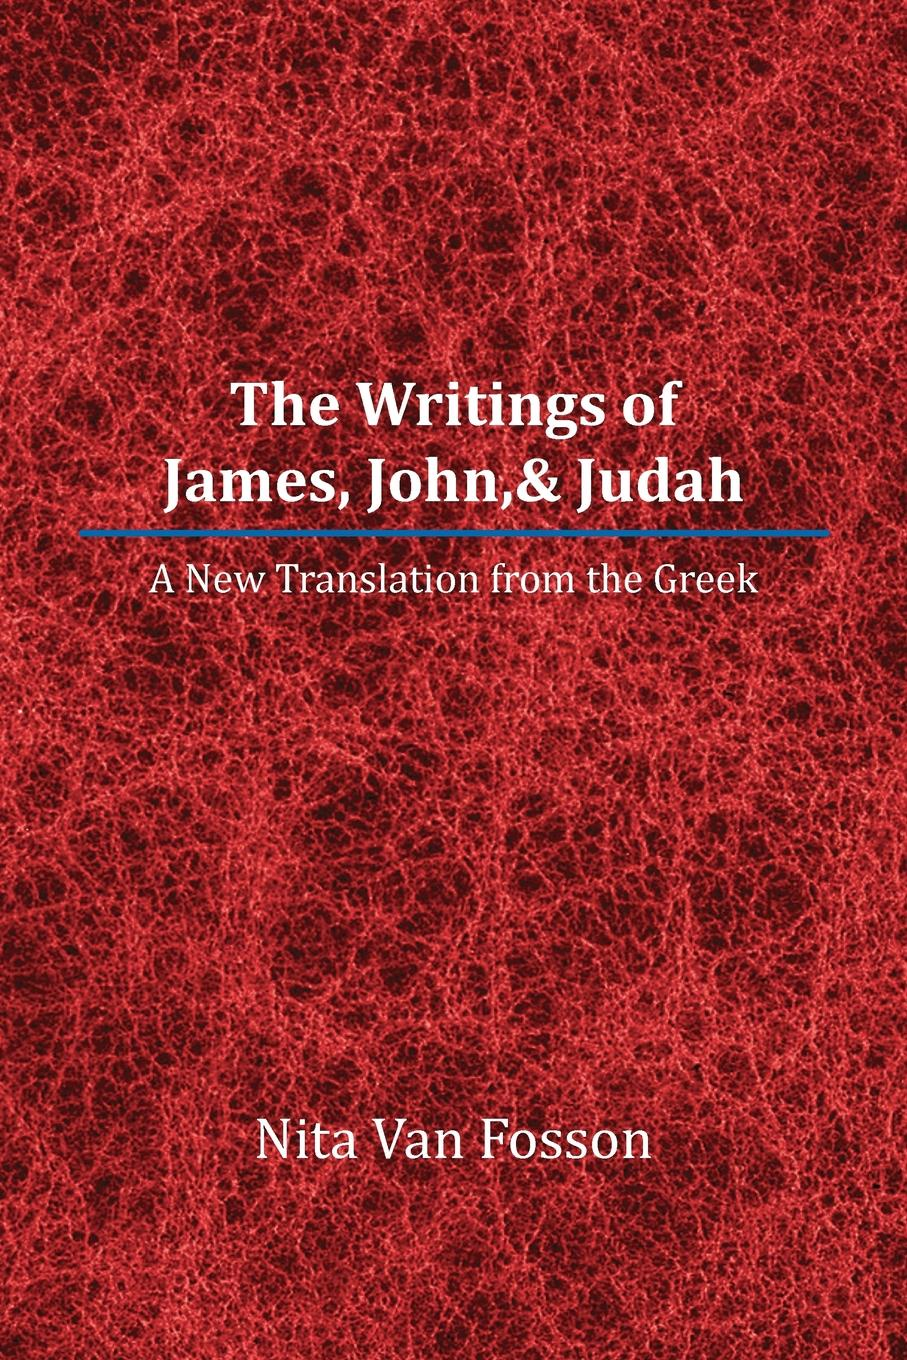 Nita Van Fosson The Writings of James, John,& Judah. A New Translation from the Greek